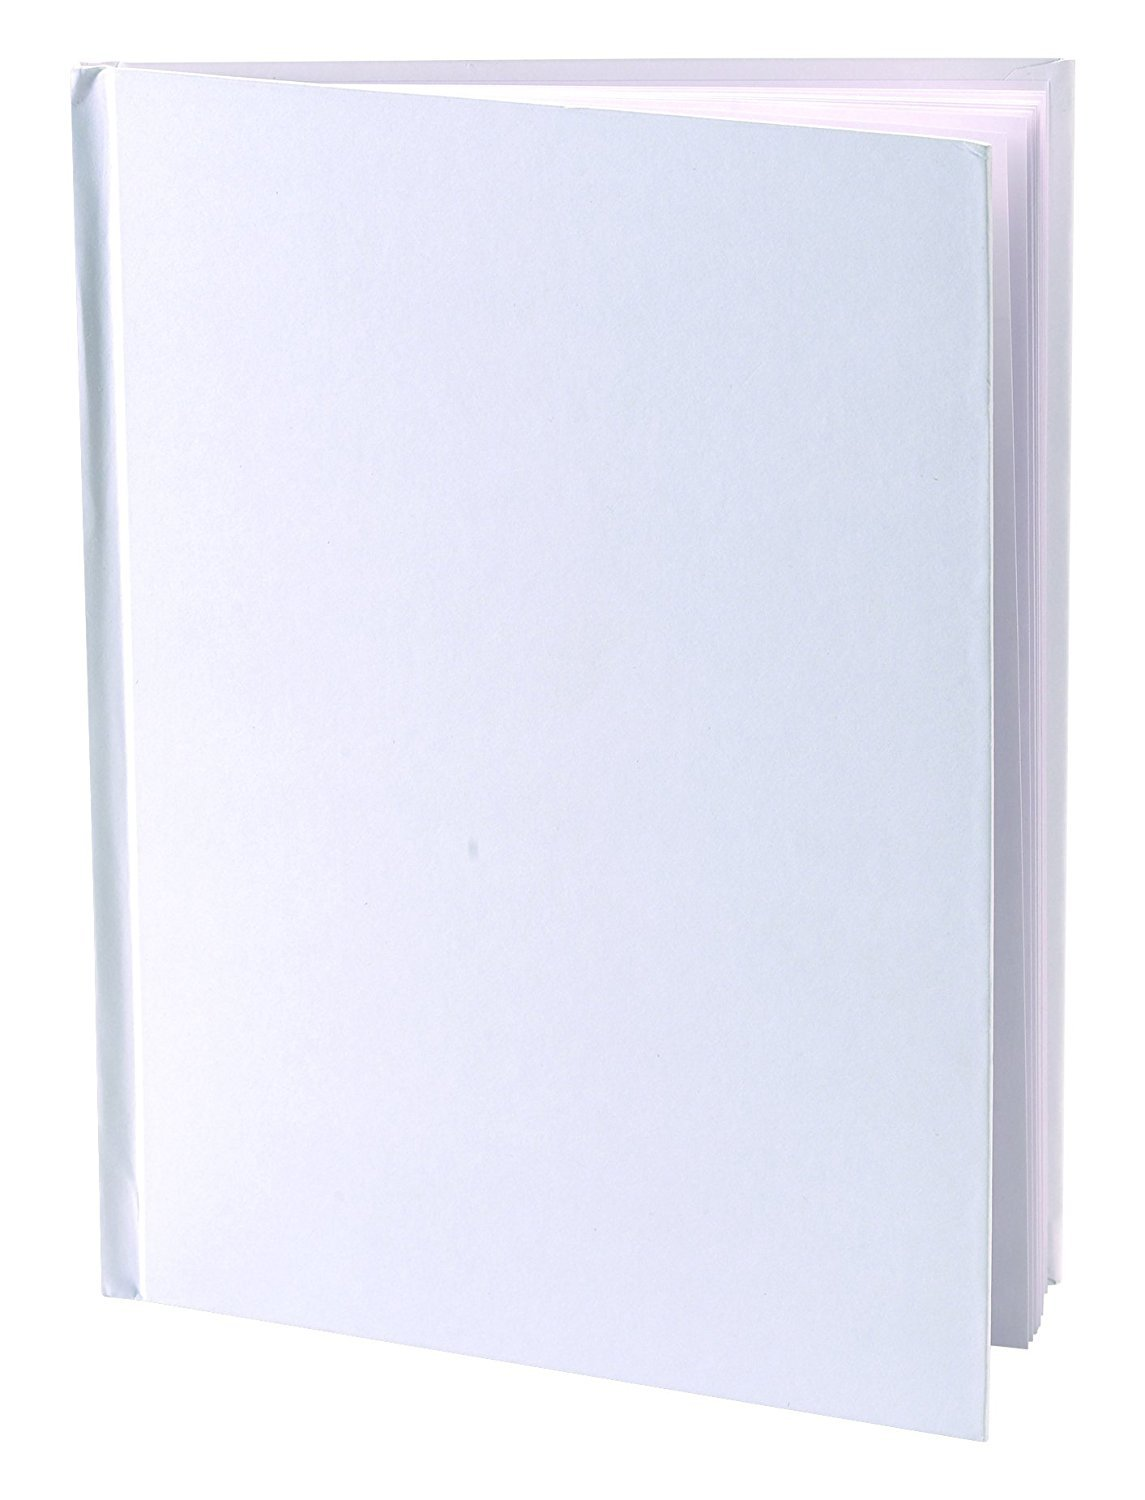 """Amazon.com : Blank Books (Pack of 6) - 6"""" x 8"""" Hardcover with White Pages -  32 Pages (16 sheets) per book : Office Products"""